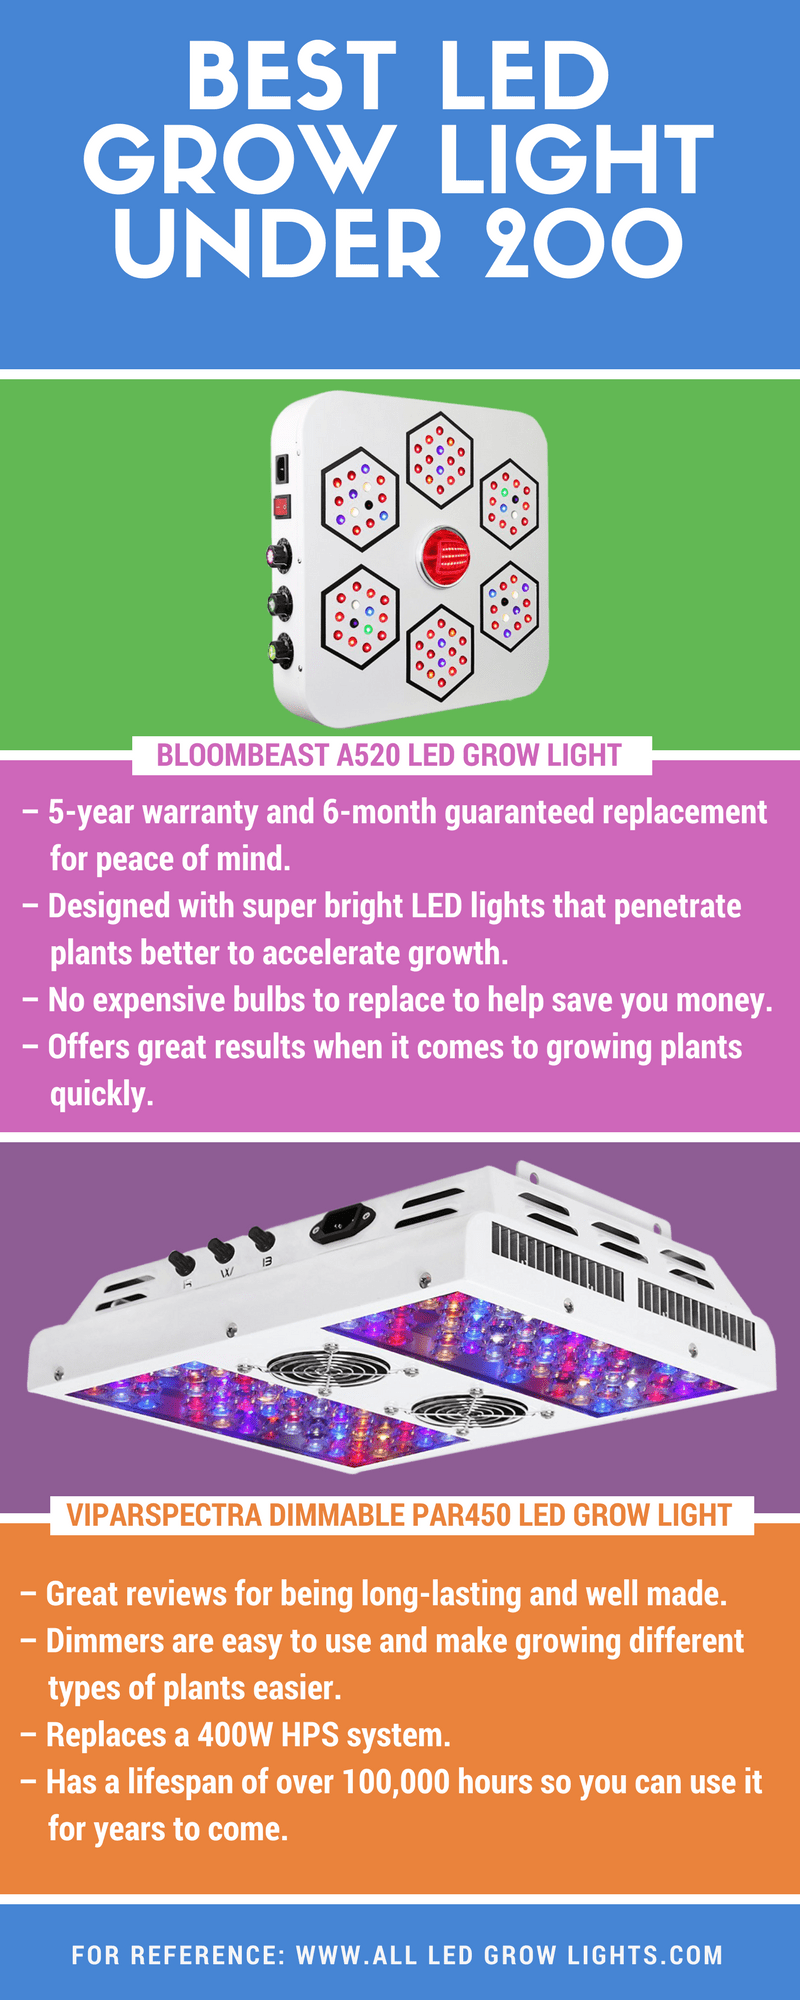 led grow light under $200 info graph